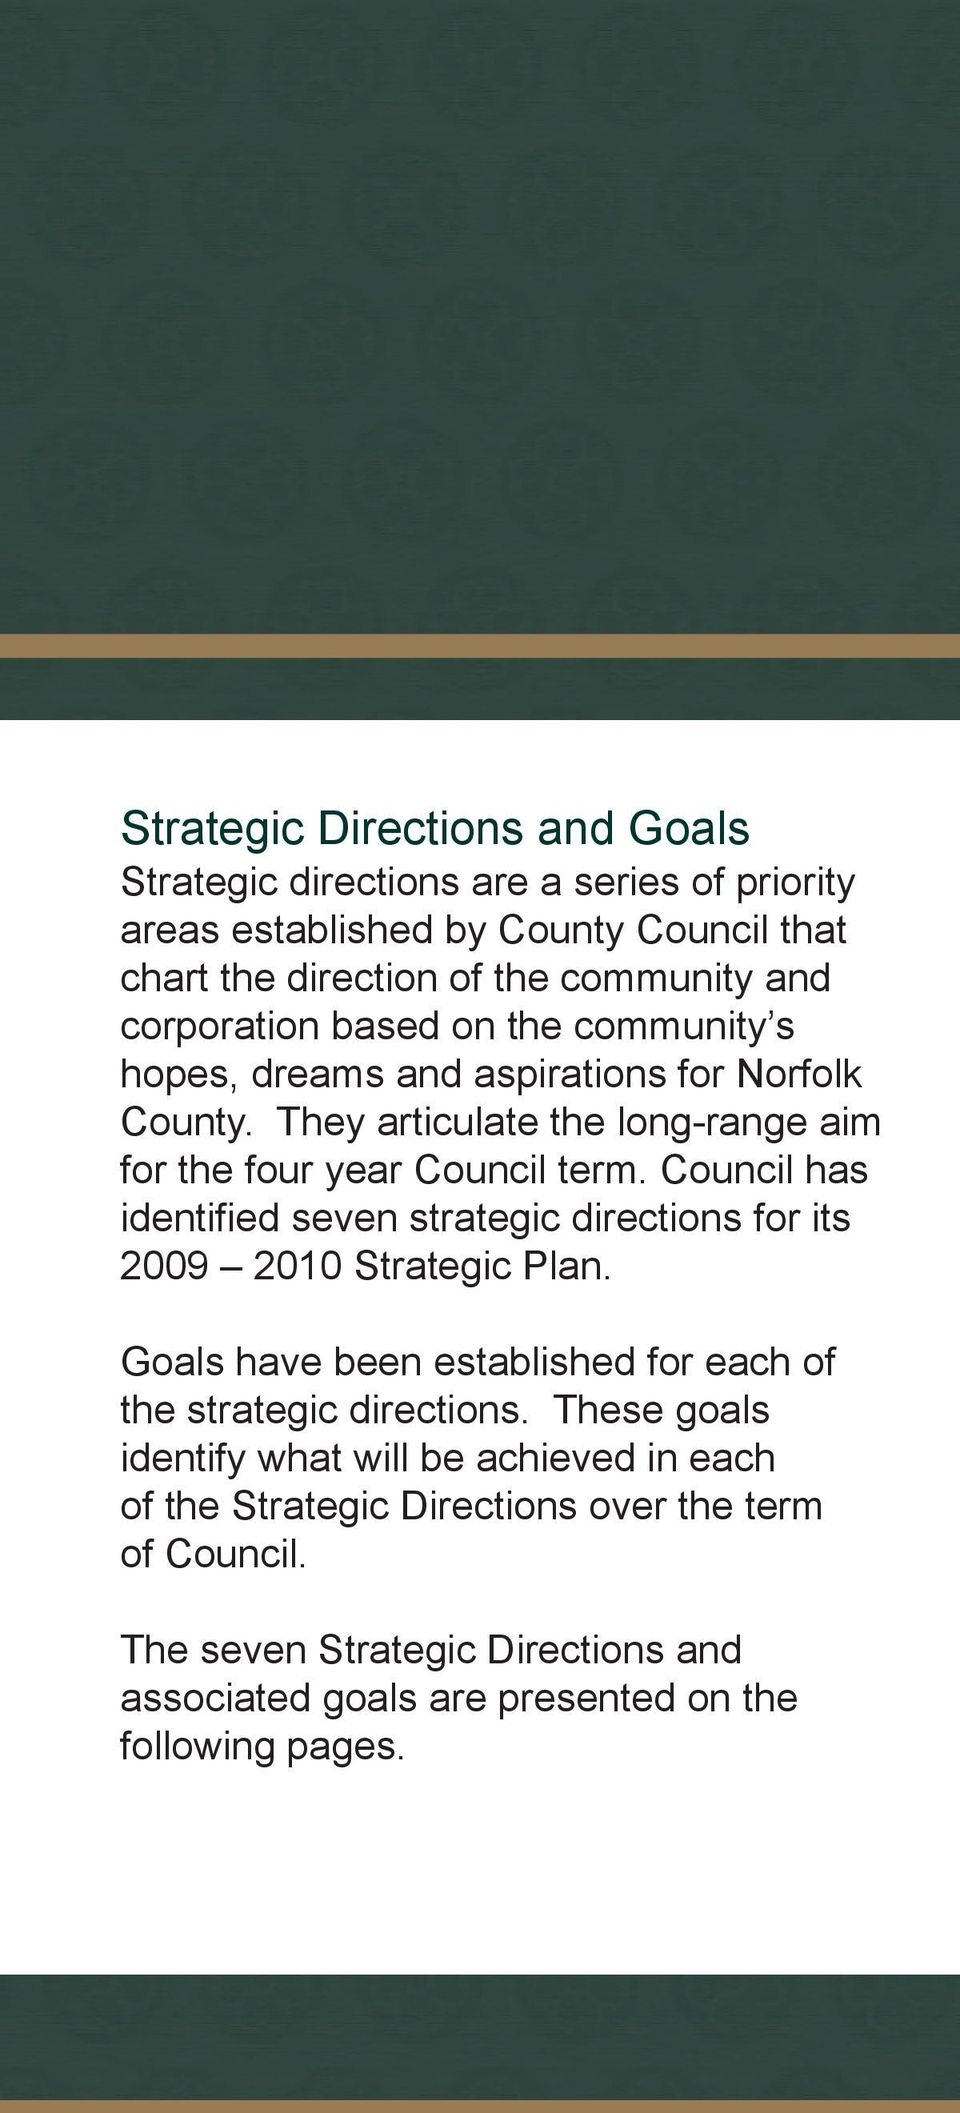 Council has identified seven strategic directions for its 2009 2010 Strategic Plan. Goals have been established for each of the strategic directions.